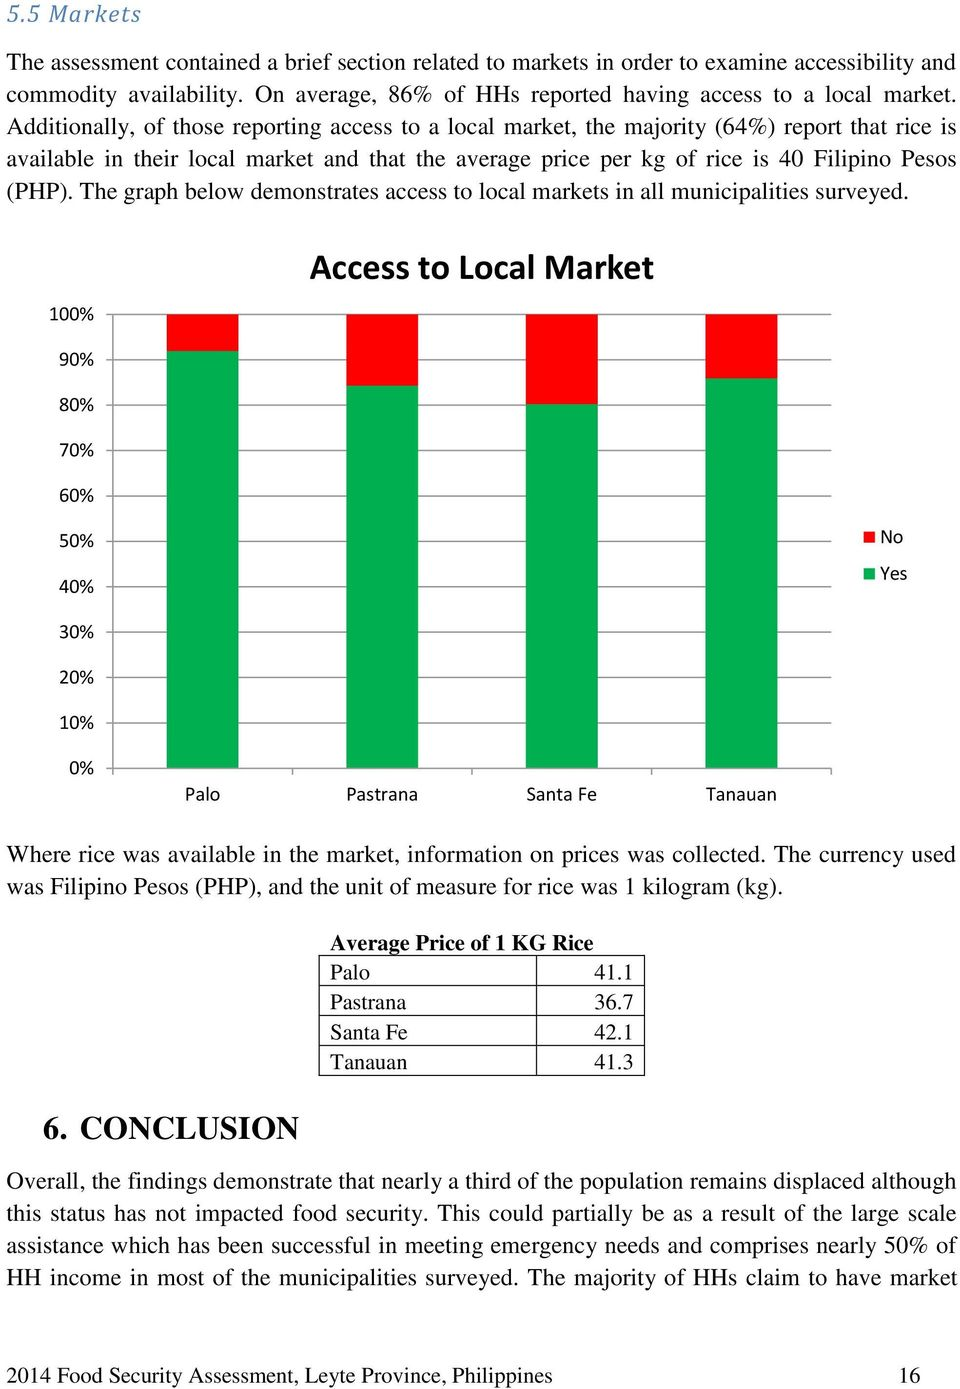 The graph below demonstrates access to local markets in all municipalities surveyed.